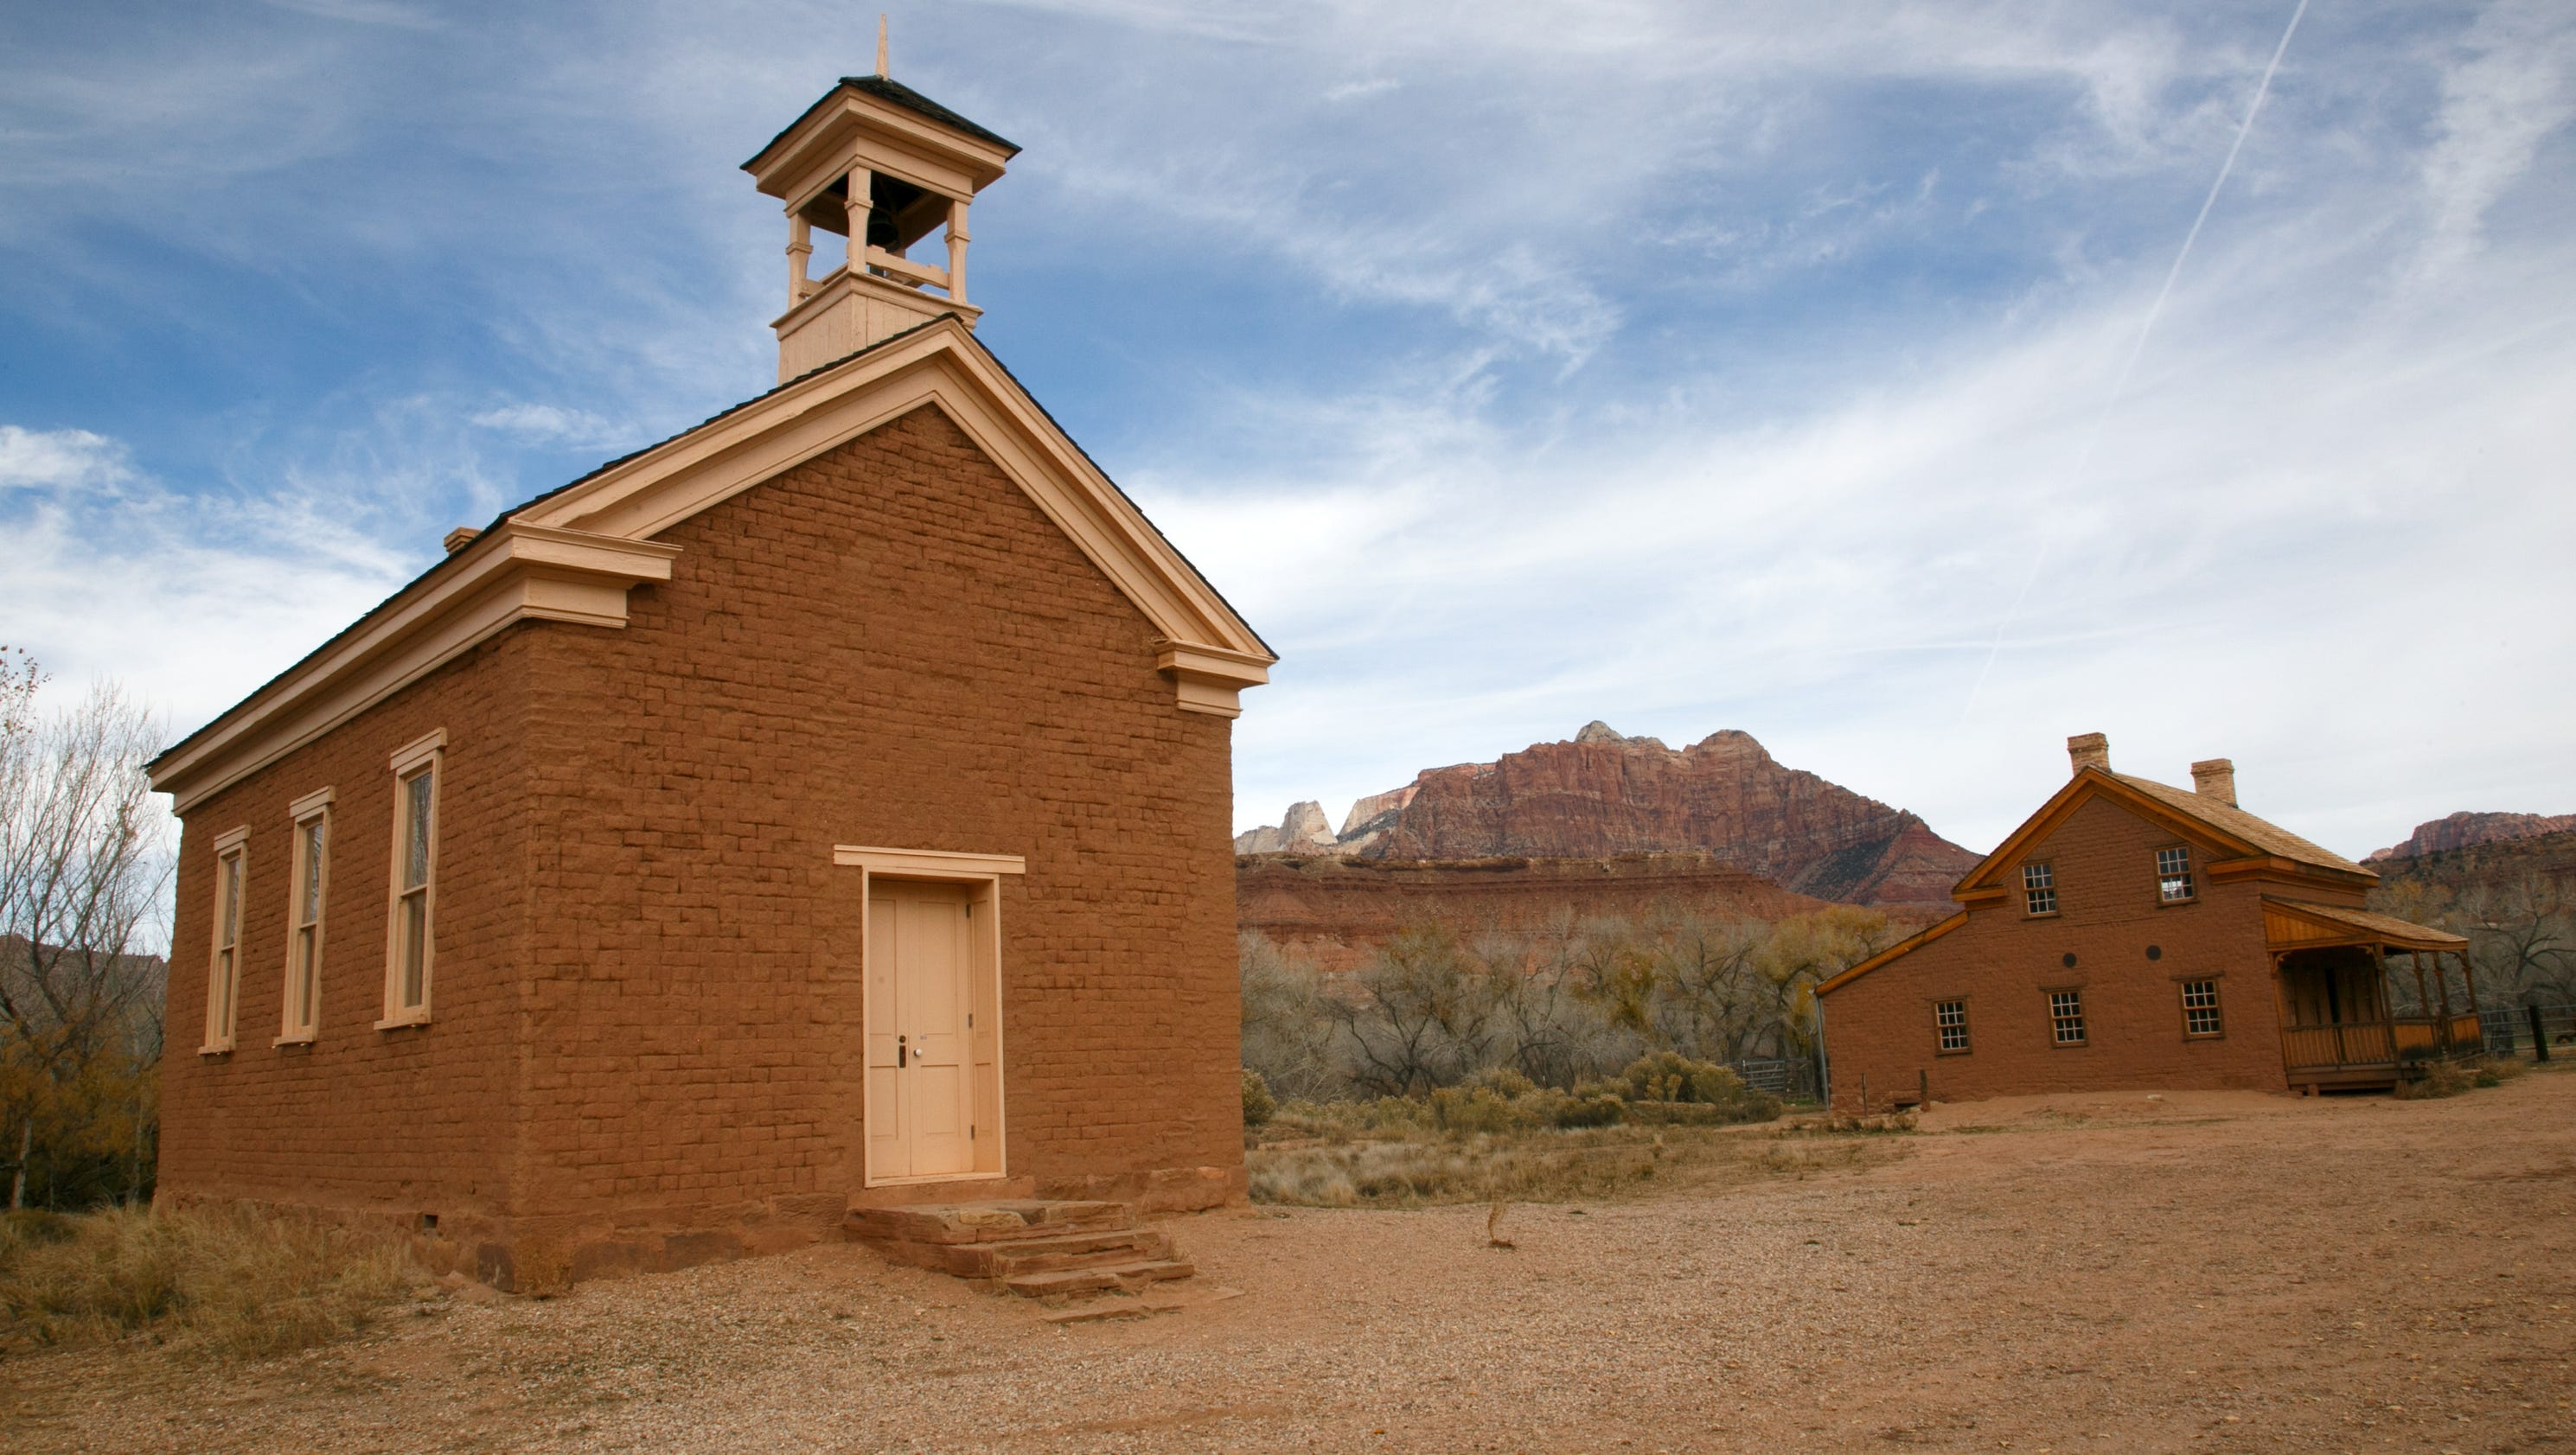 Grafton ghost town a preservation of the past for The grafton